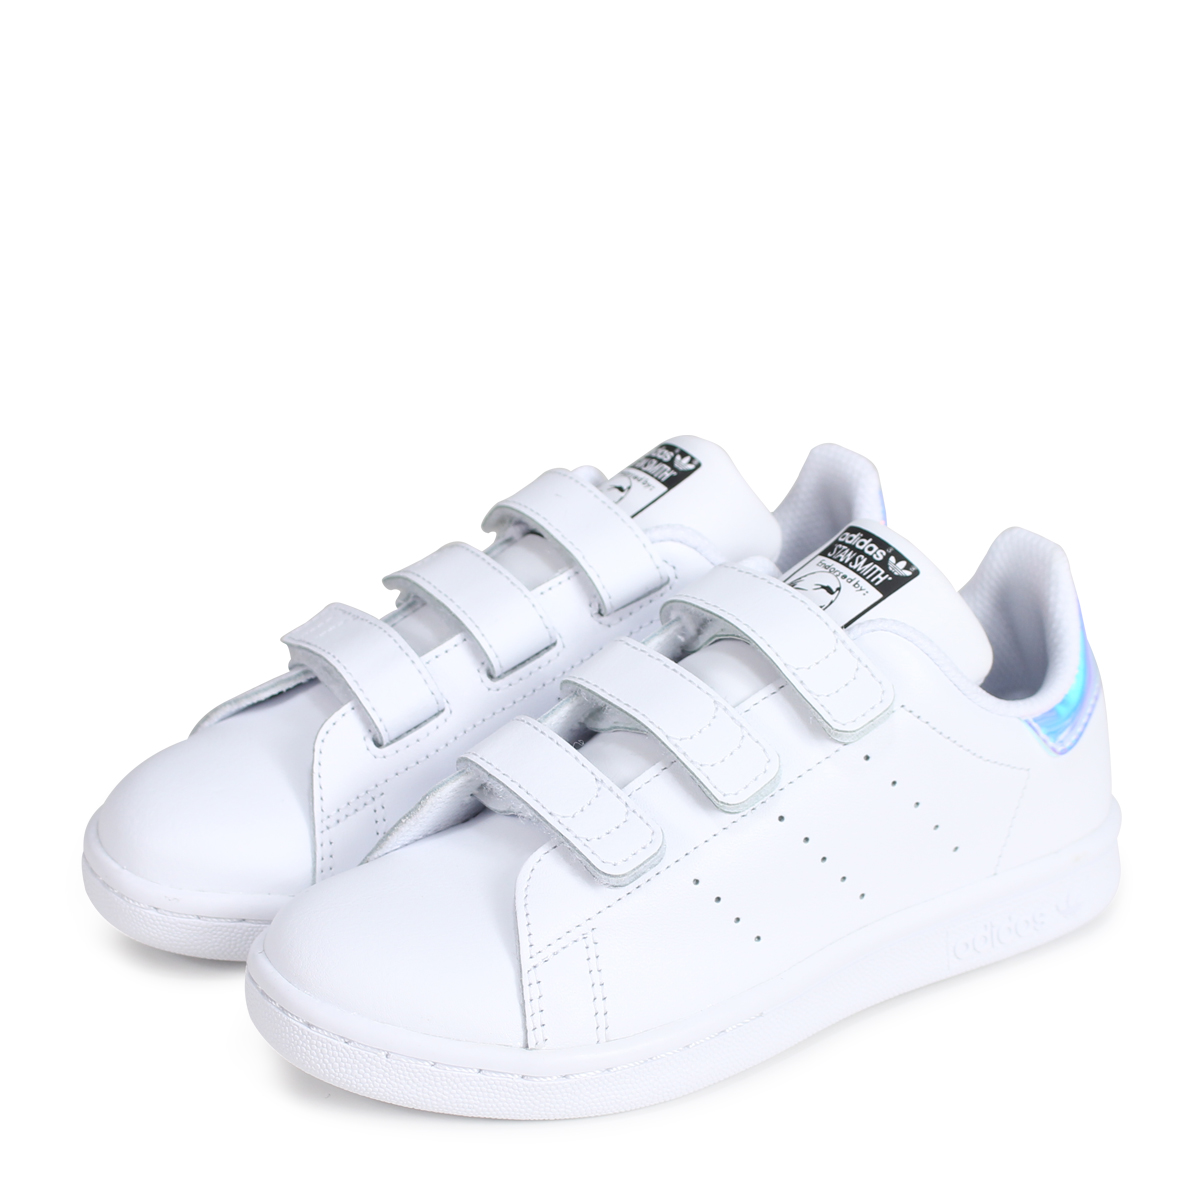 9e5b0c5a029030 adidas Originals STAN SMITH CF C Adidas originals Stan Smith kids sneakers  AQ6273 white  load planned Shinnyu load in reservation product 7 7  containing  ...